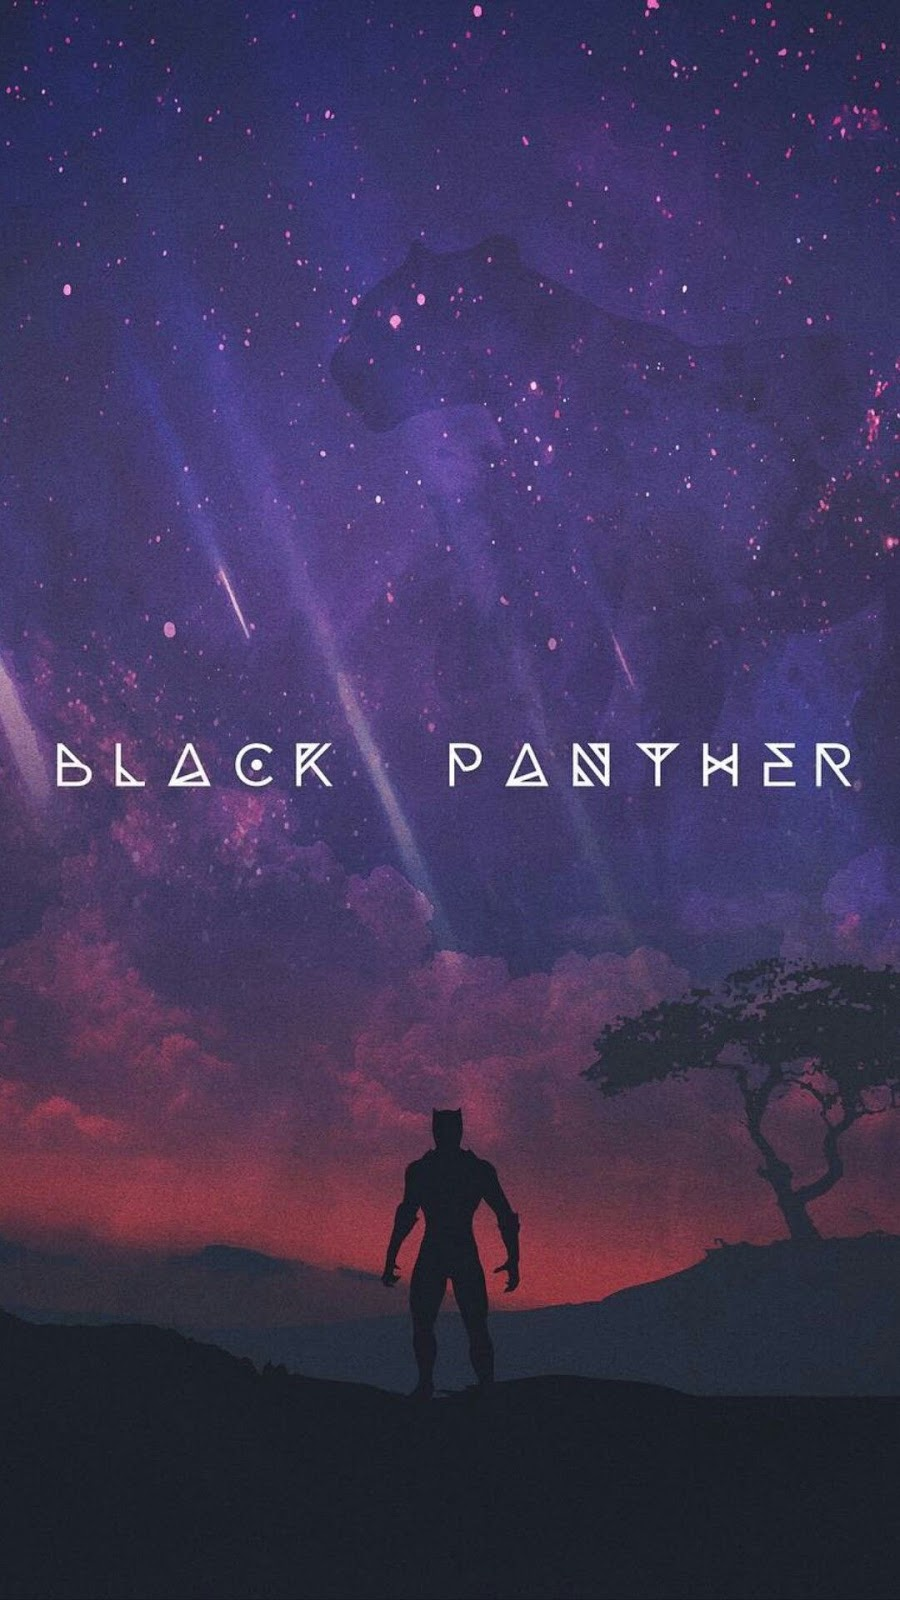 Black Panther Wallpapers From Avengers In Hd 4k Whats Images